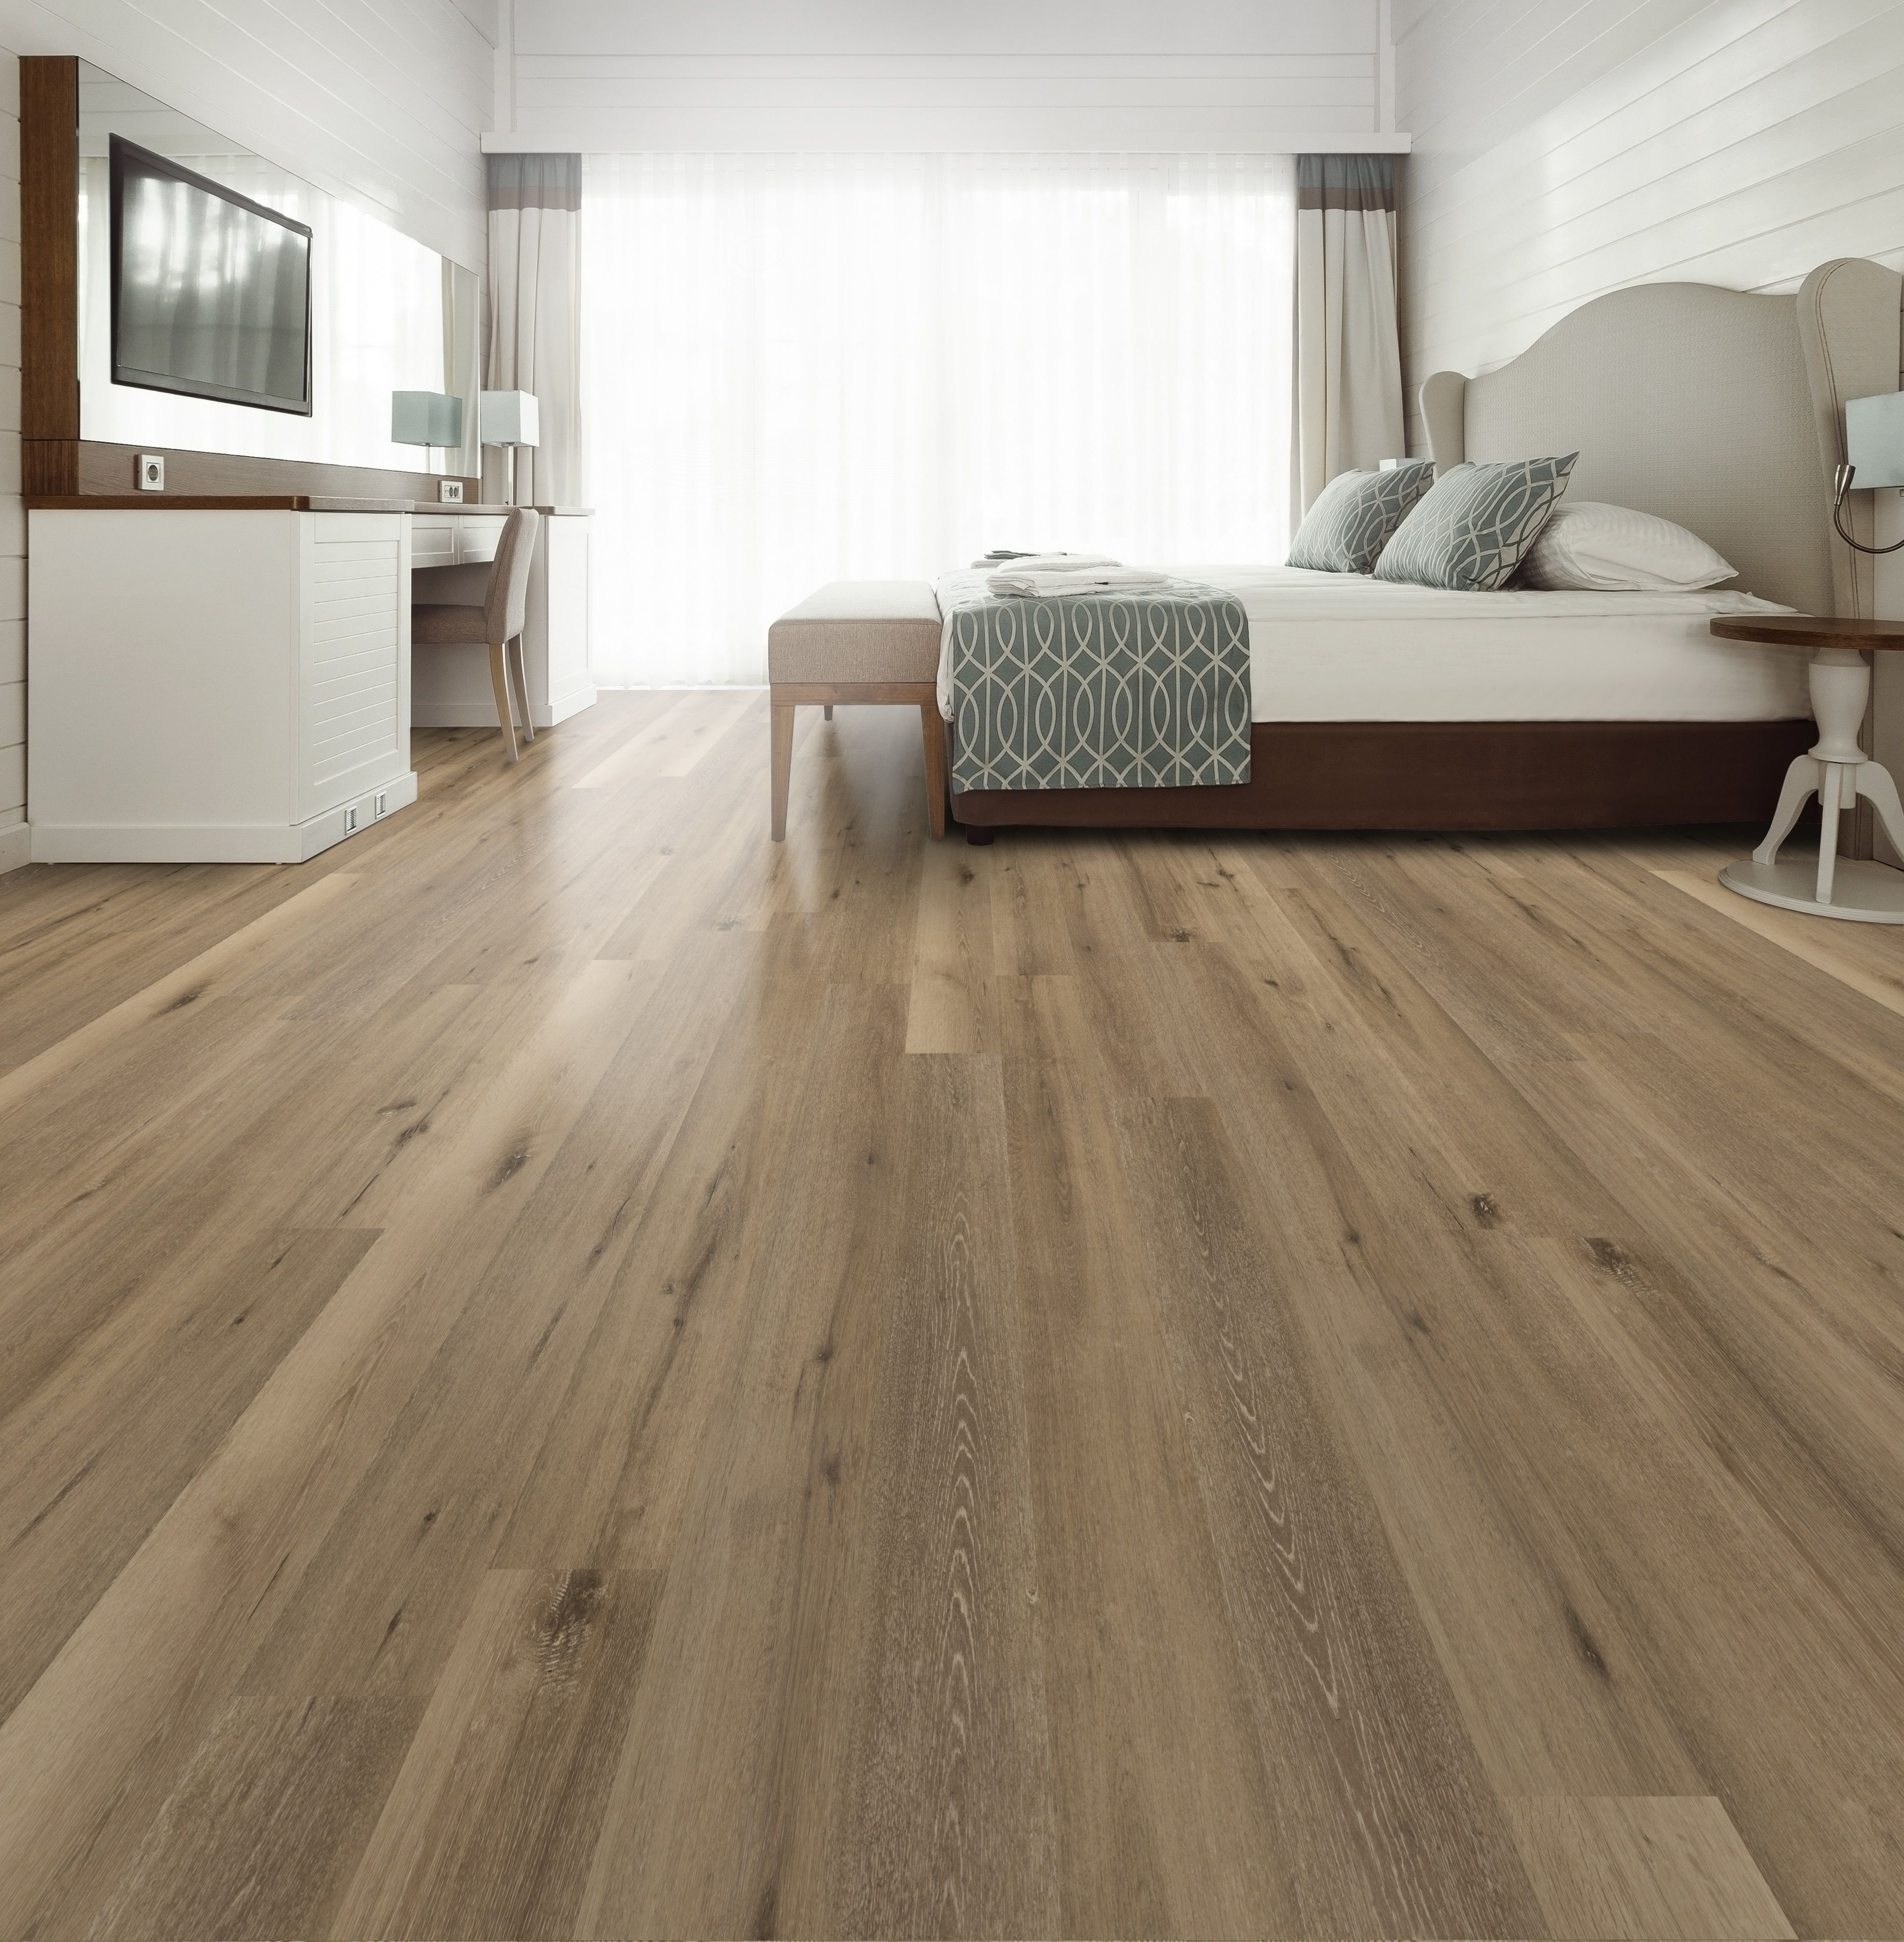 Aged Hickory Click Together Vinyl Flooring Hifi Wood Grain Imaging Texture Commercial Grade 20mil Wear Layer 100 Waterproof Construction Built In